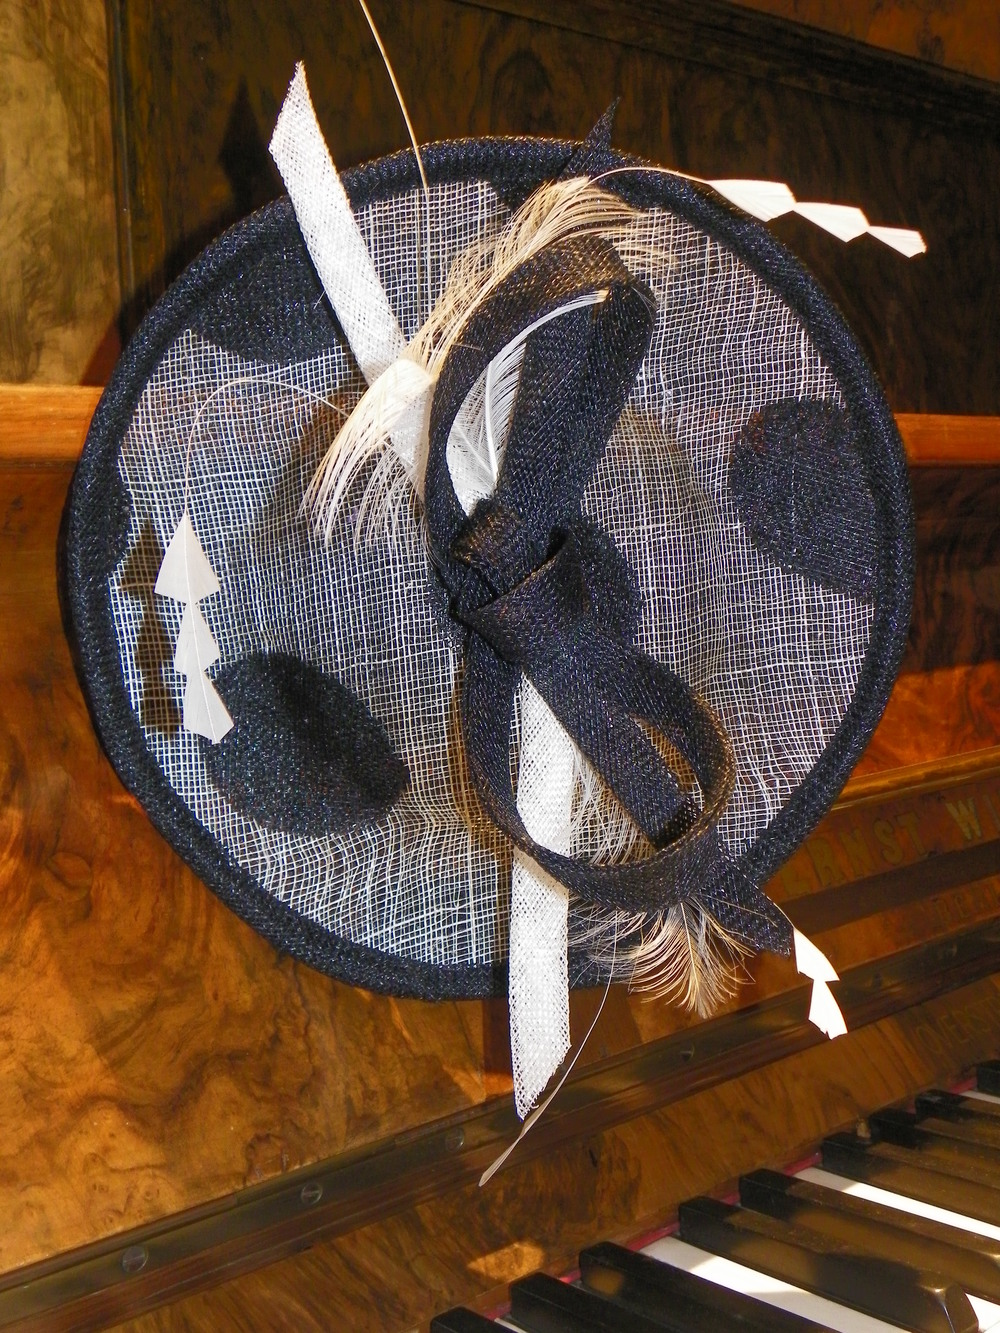 Mini saucer hat with spot sinamay overlay